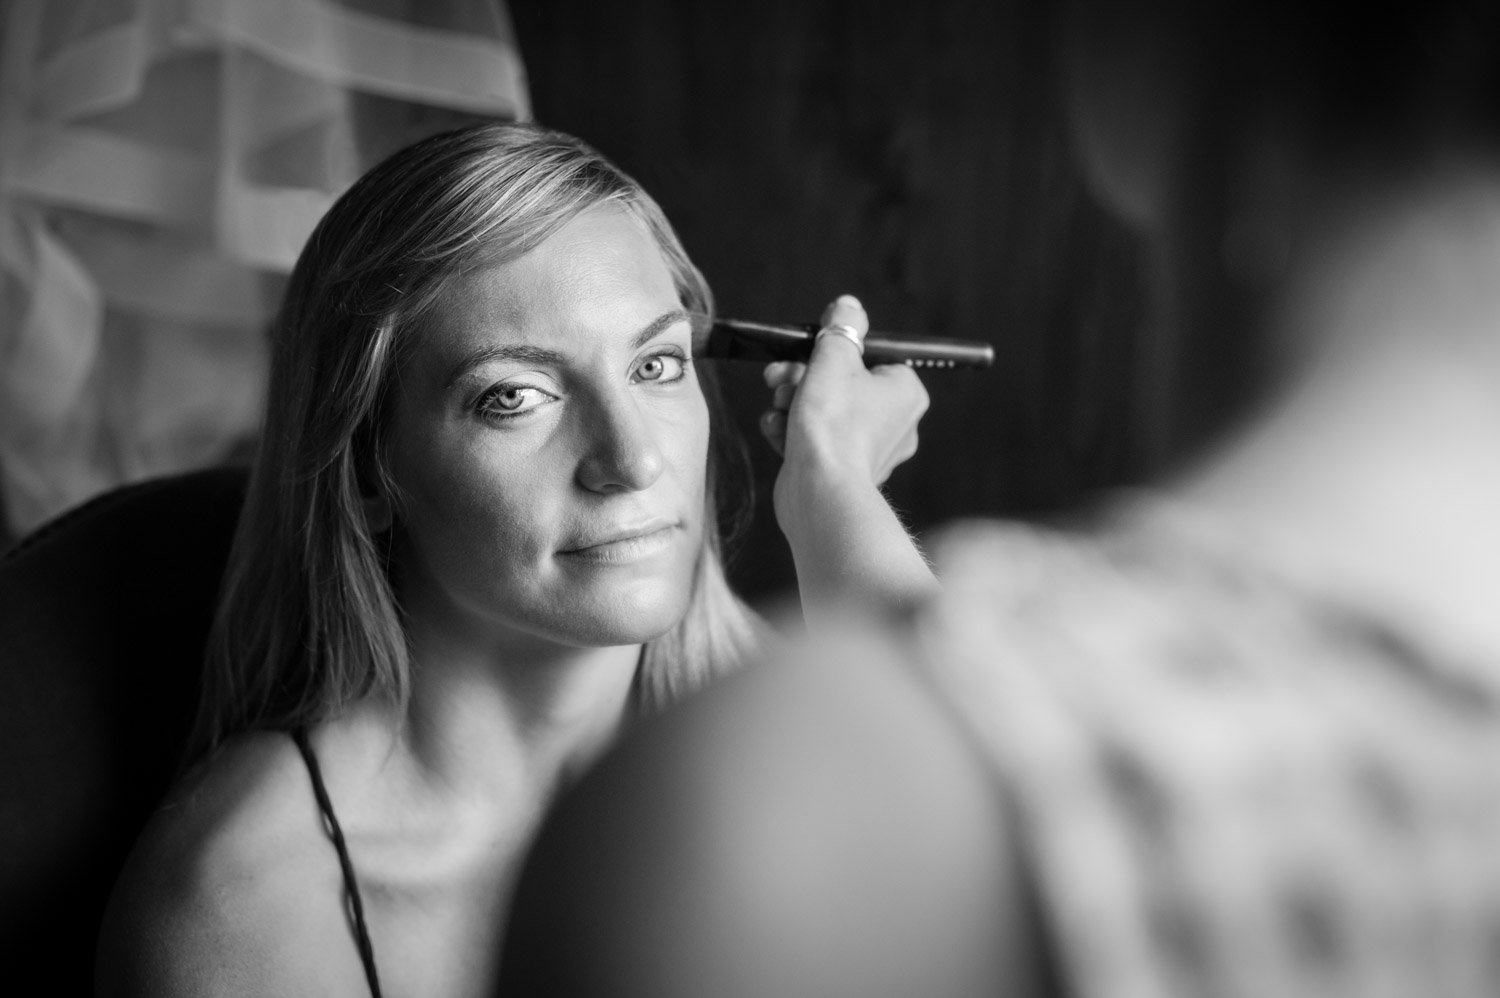 Portrait of bridal prep by wedding photographers at Ripe Photography in Siena, Italy.